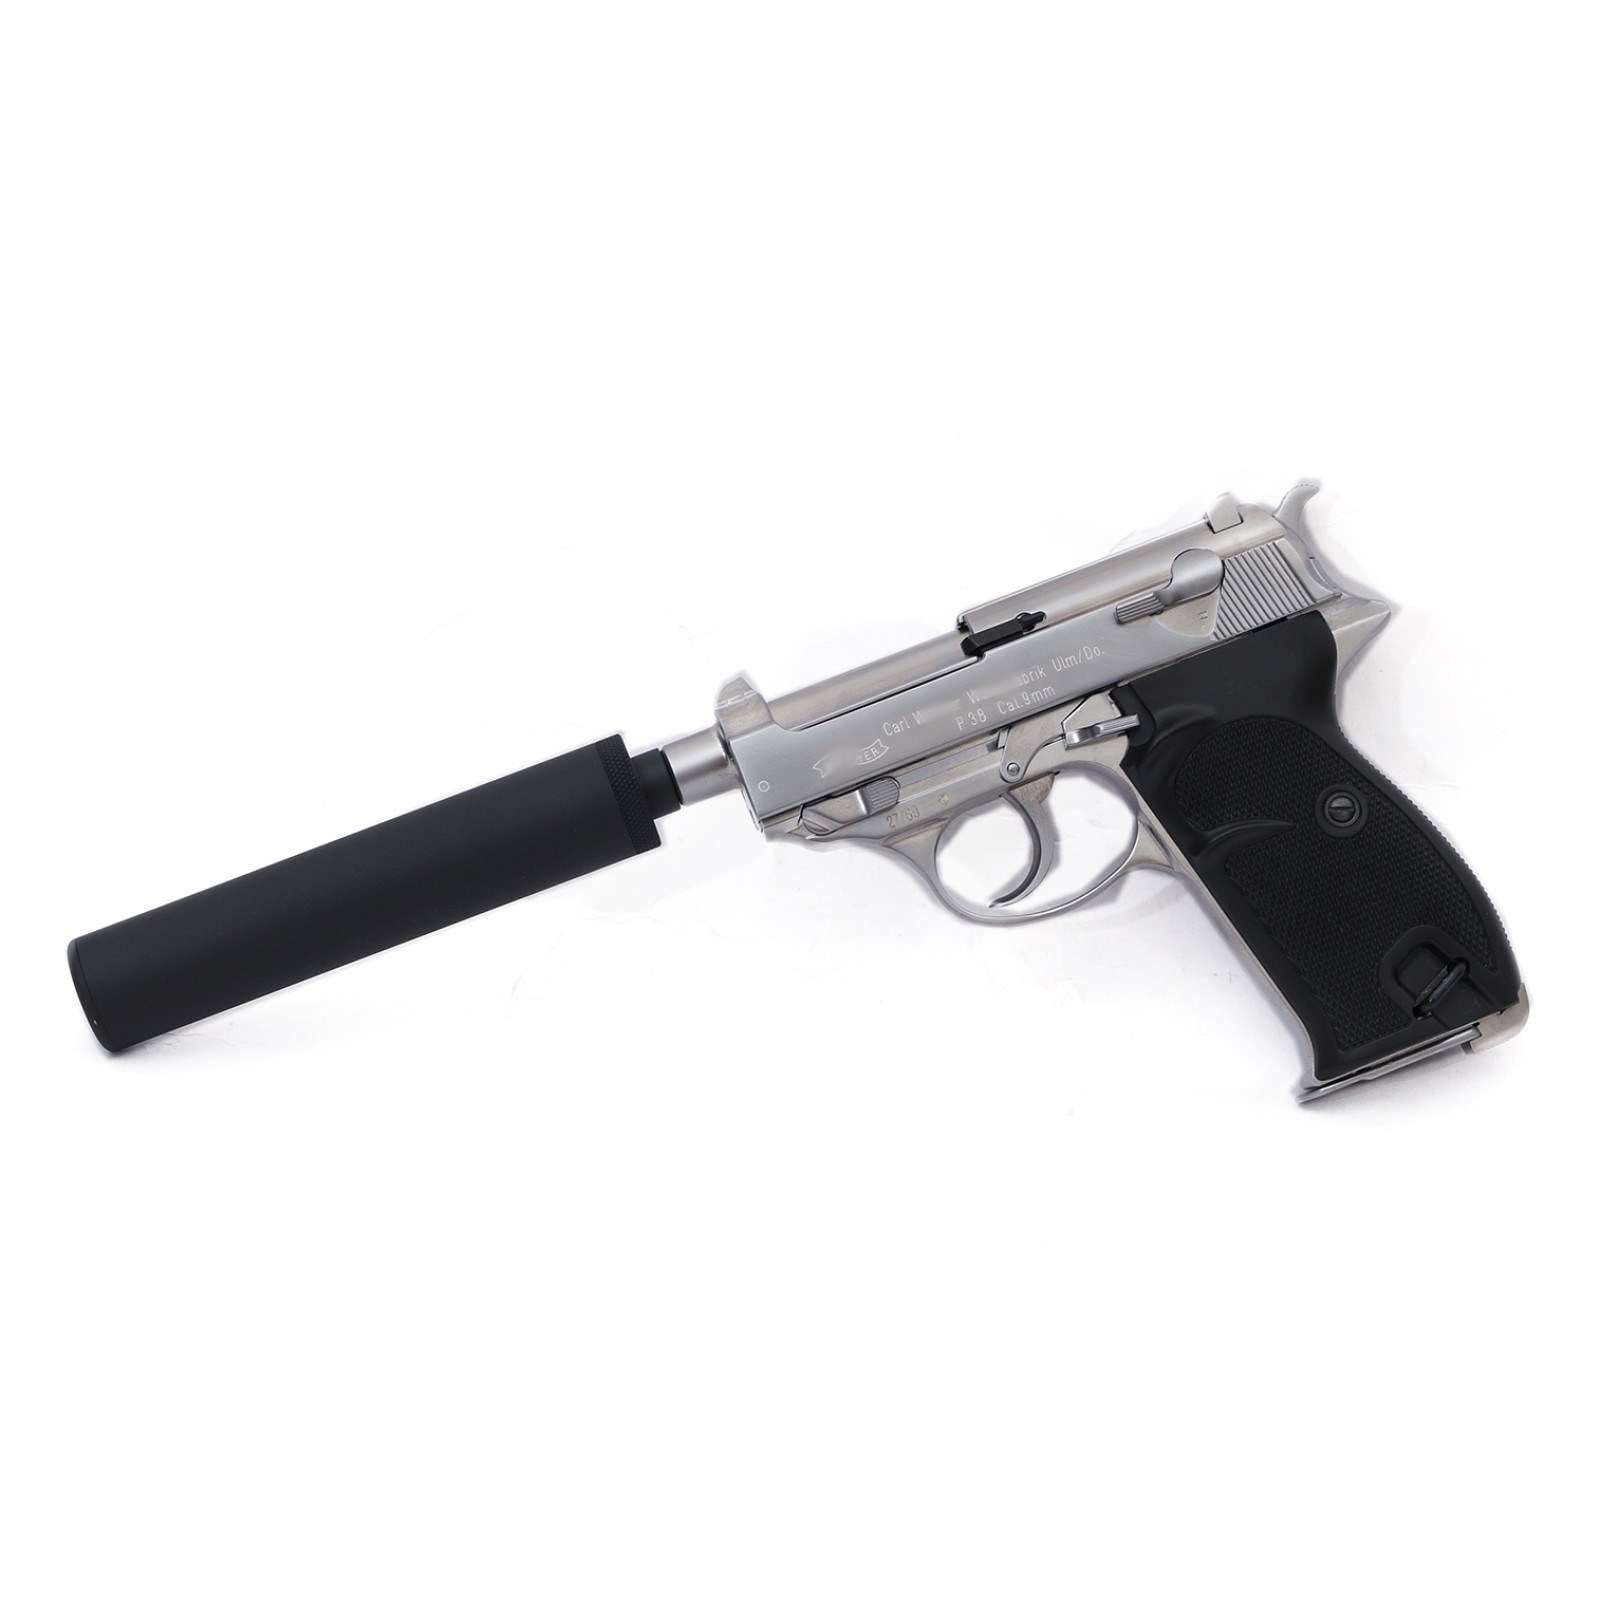 WE P38K GBB Pistol (Silver, Full marking, CIV) - WE World